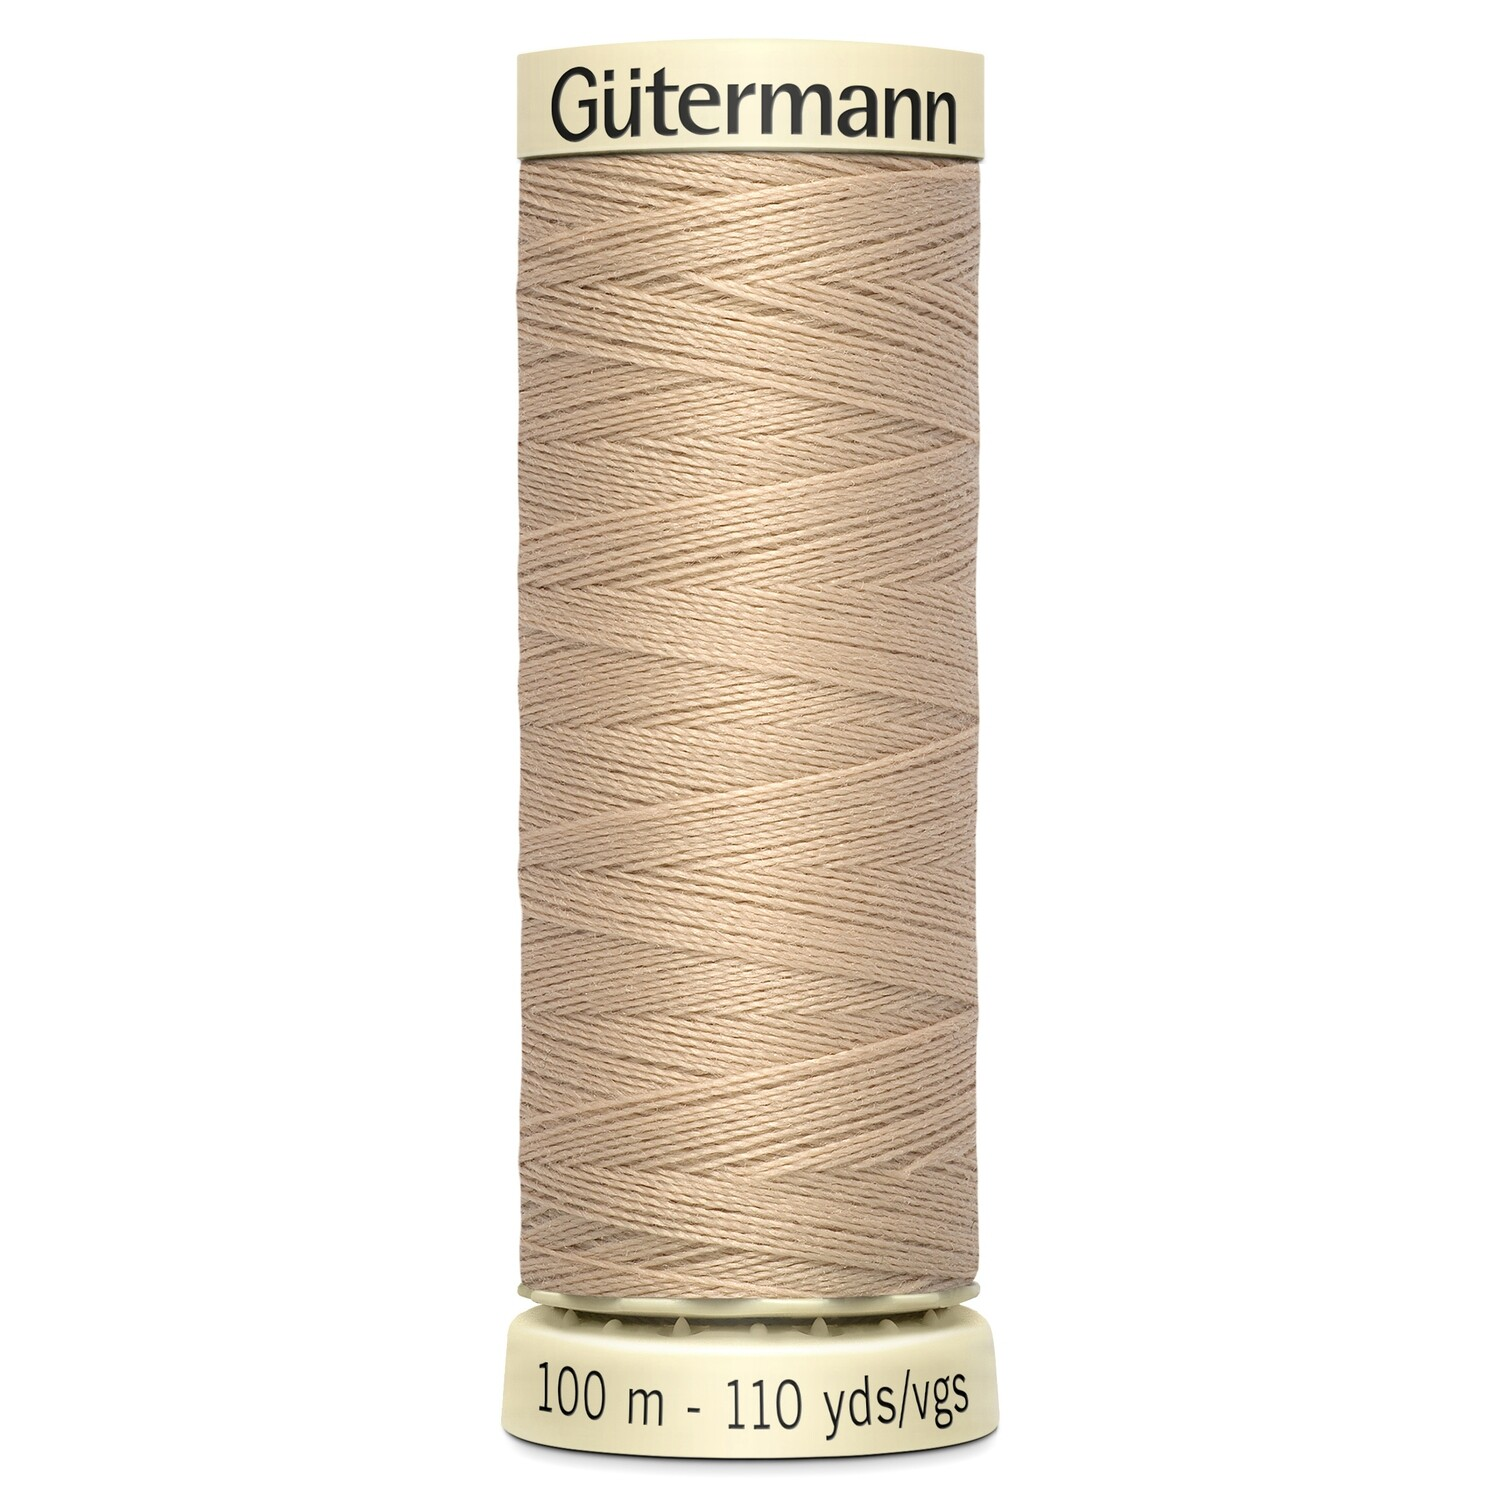 Gutermann Sew-All thread 186